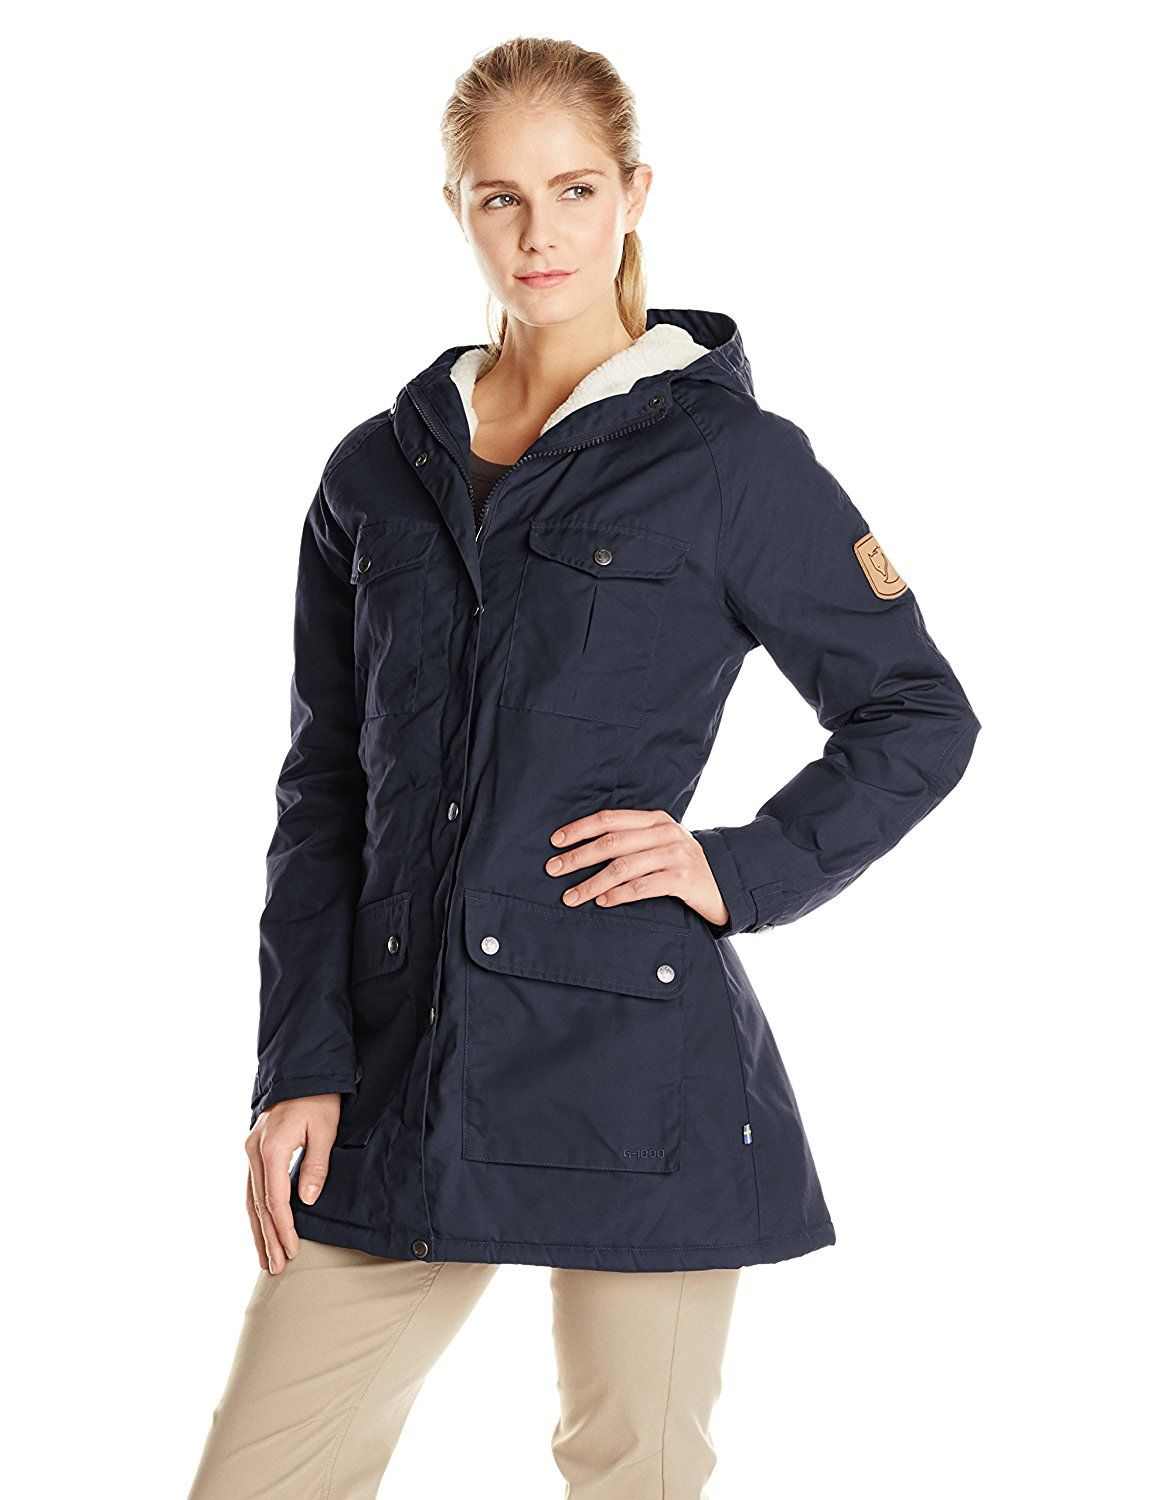 Fjallraven Women S Greenland Winter Parka This Is An Amazon Affiliate Link Learn More By Coats Jackets Women Fjallraven Women Winter Coats Women